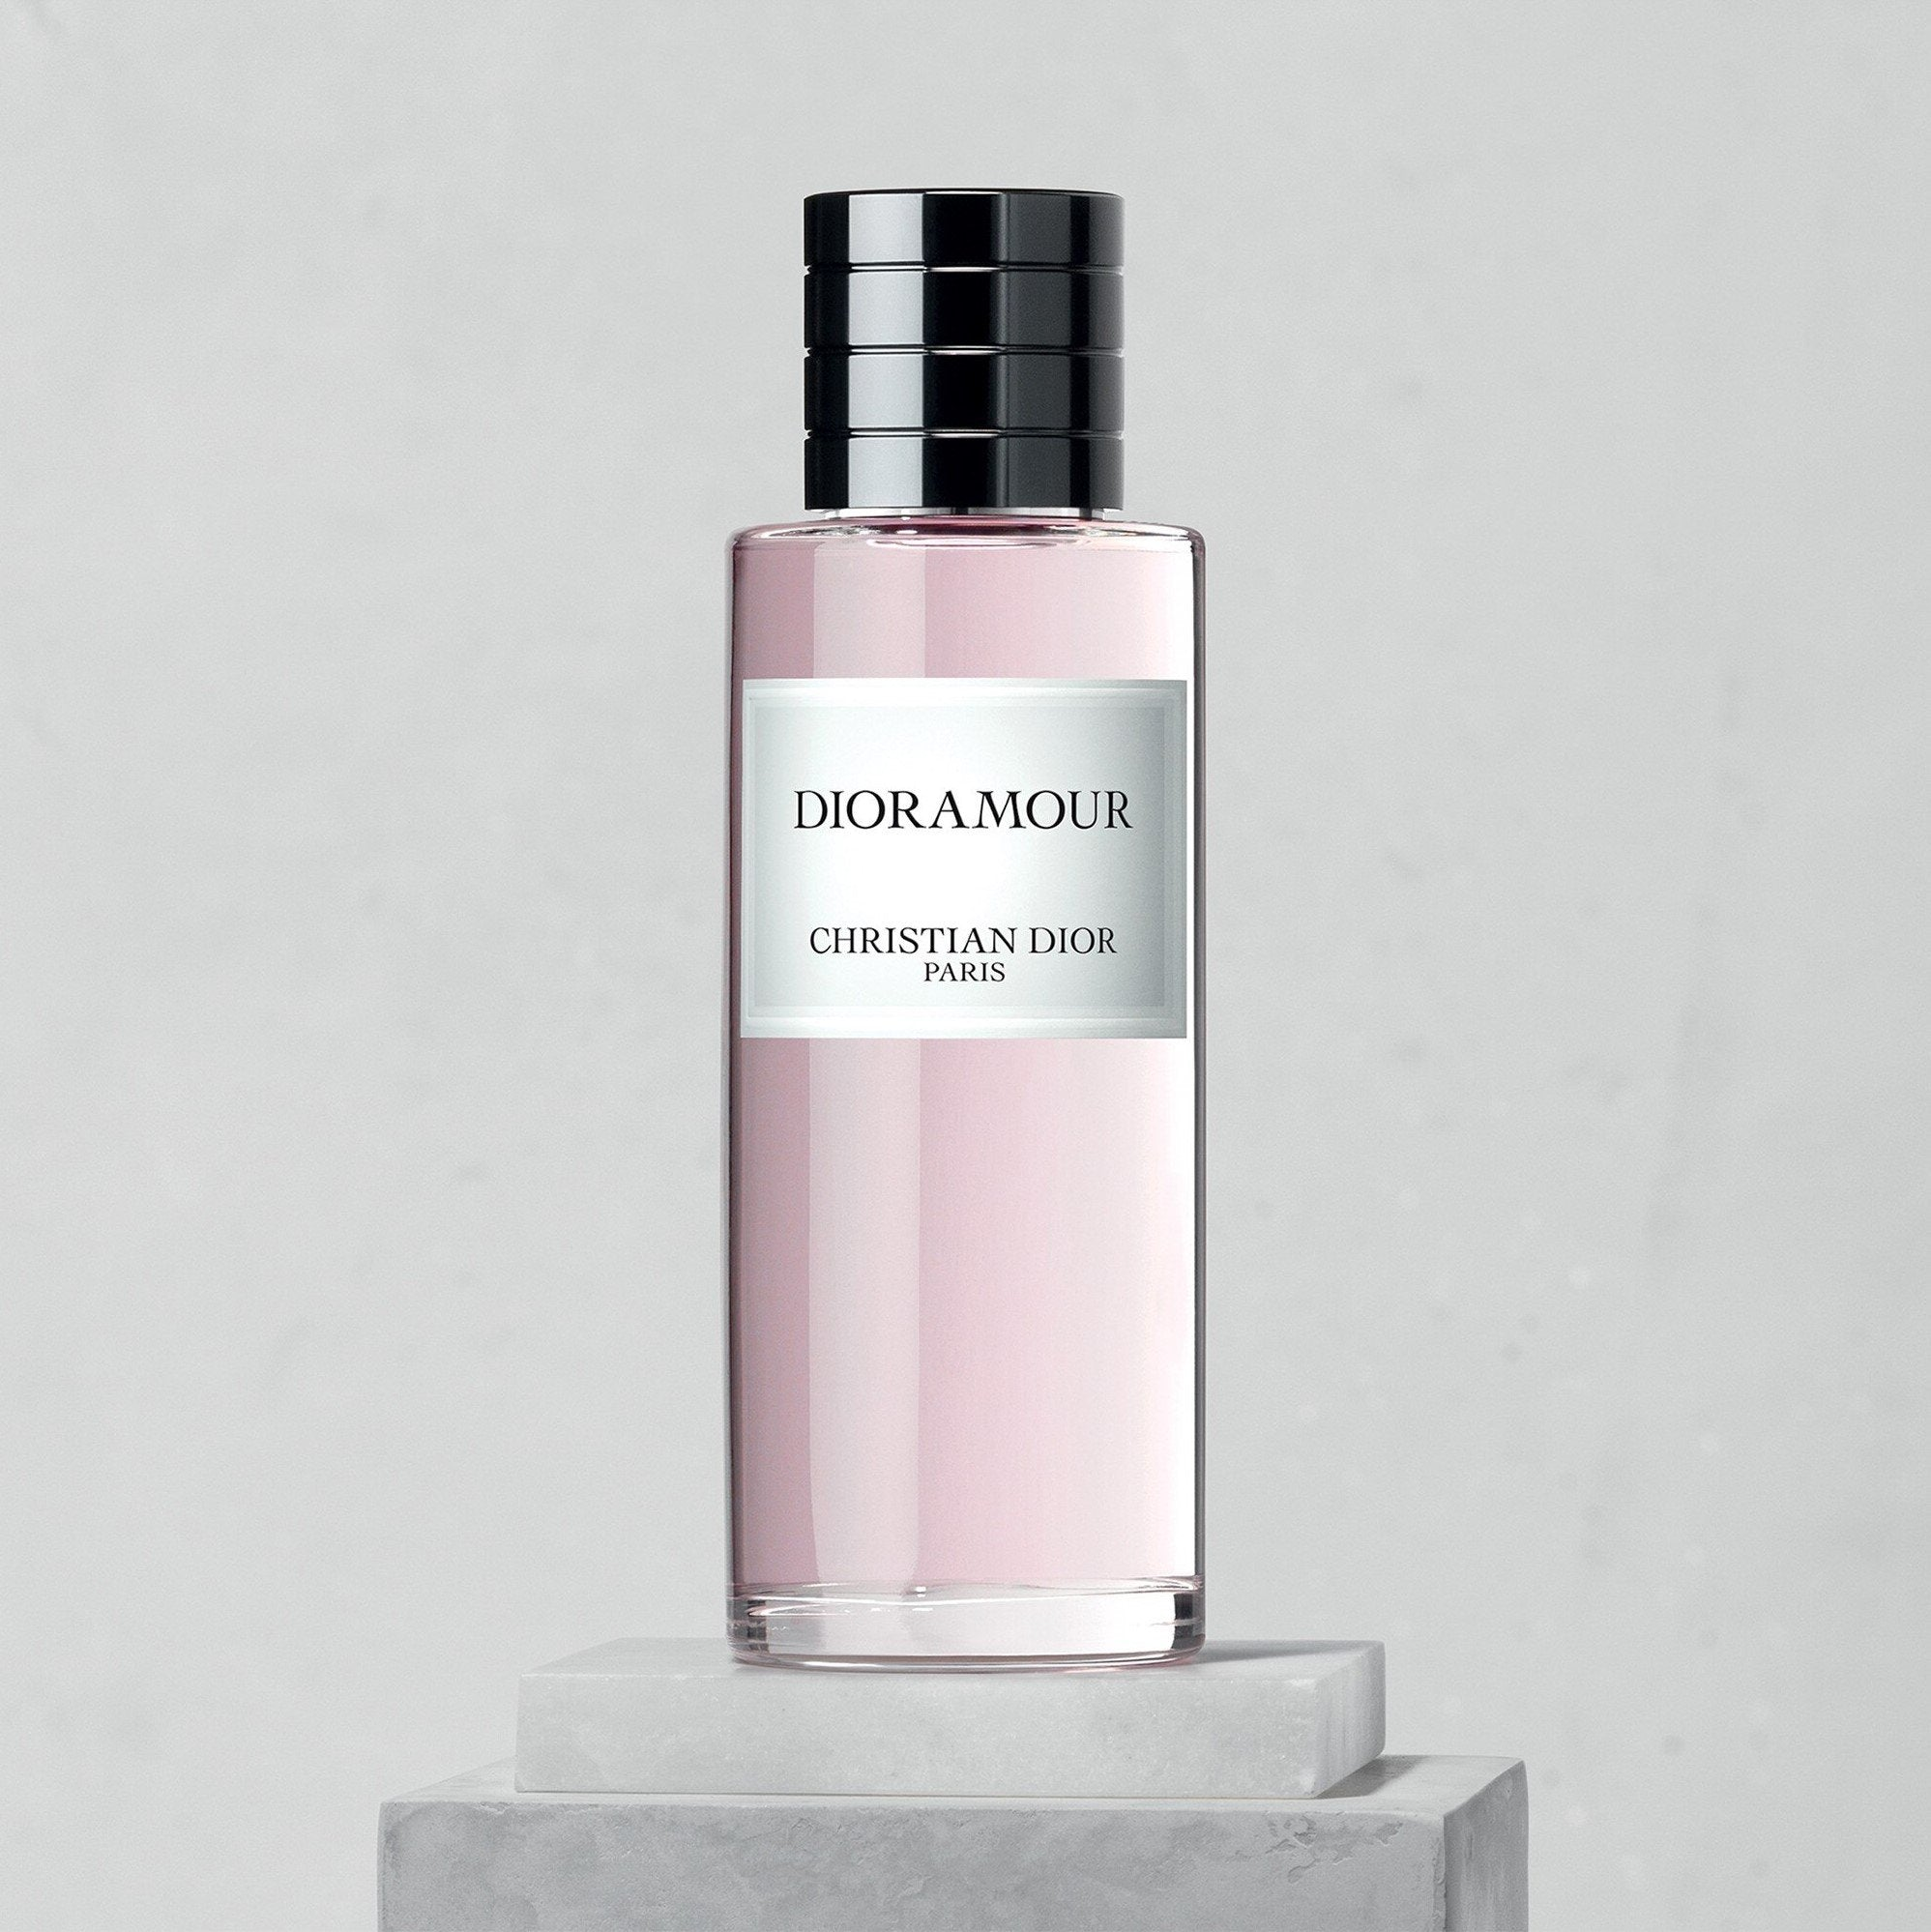 DIORAMOUR ~ Fragrance